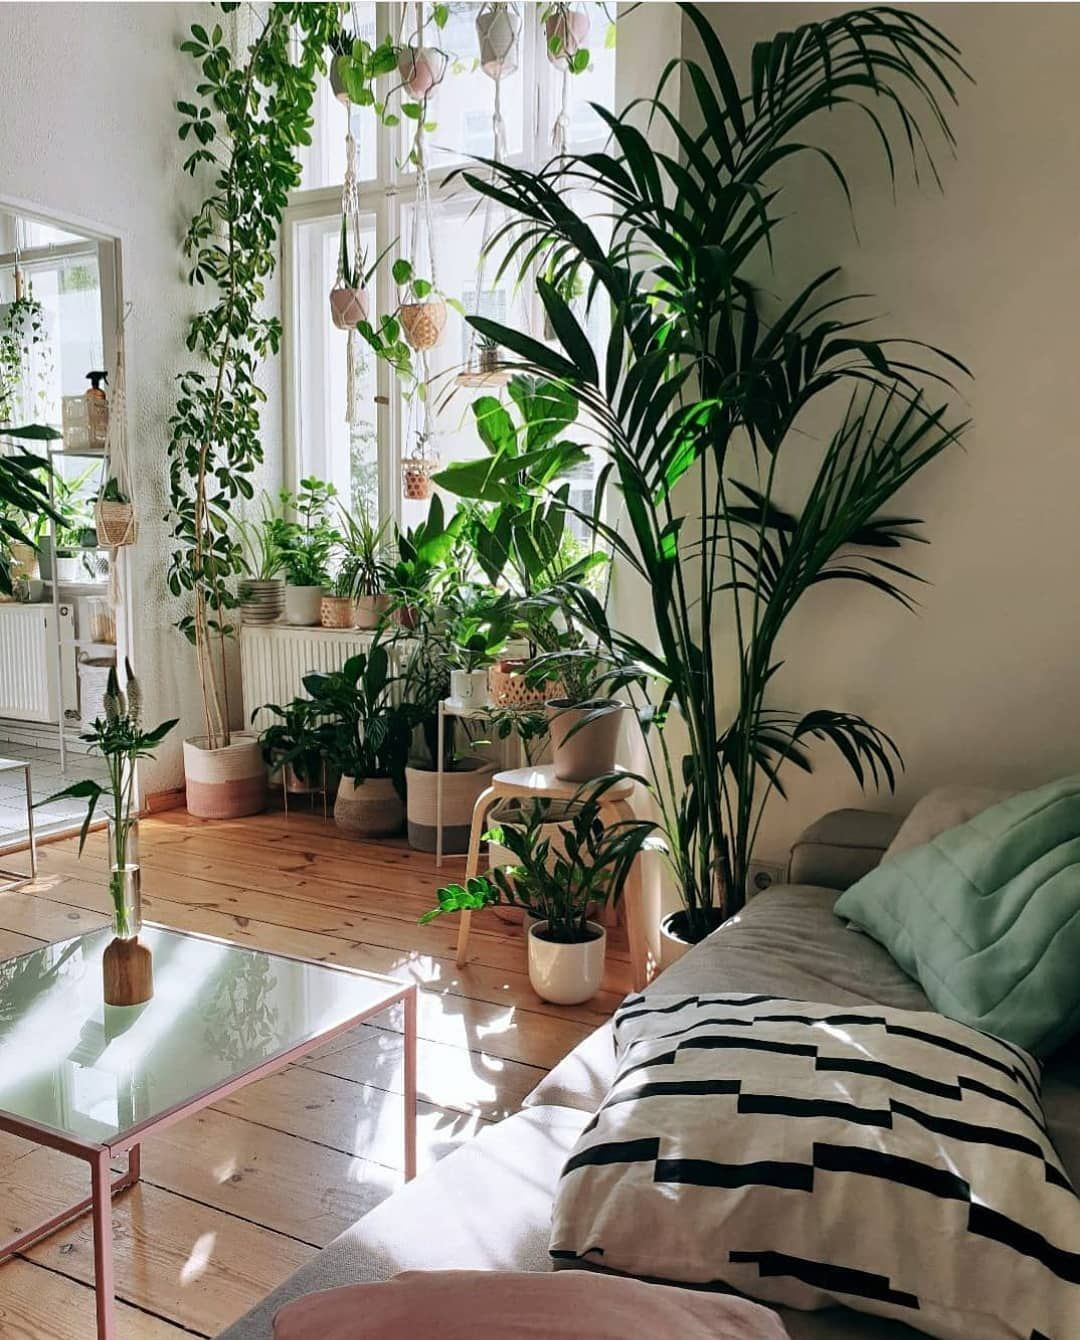 """Gefällt 6,892 Mal, 31 Kommentare - Urban Jungle Bloggers™ (@urbanjungleblog) auf Instagram: """"Sun's out, plants are taken care of, we hope your day is off to a great start! 🌿🌱🌵🌴🍀 📷 by…"""""""